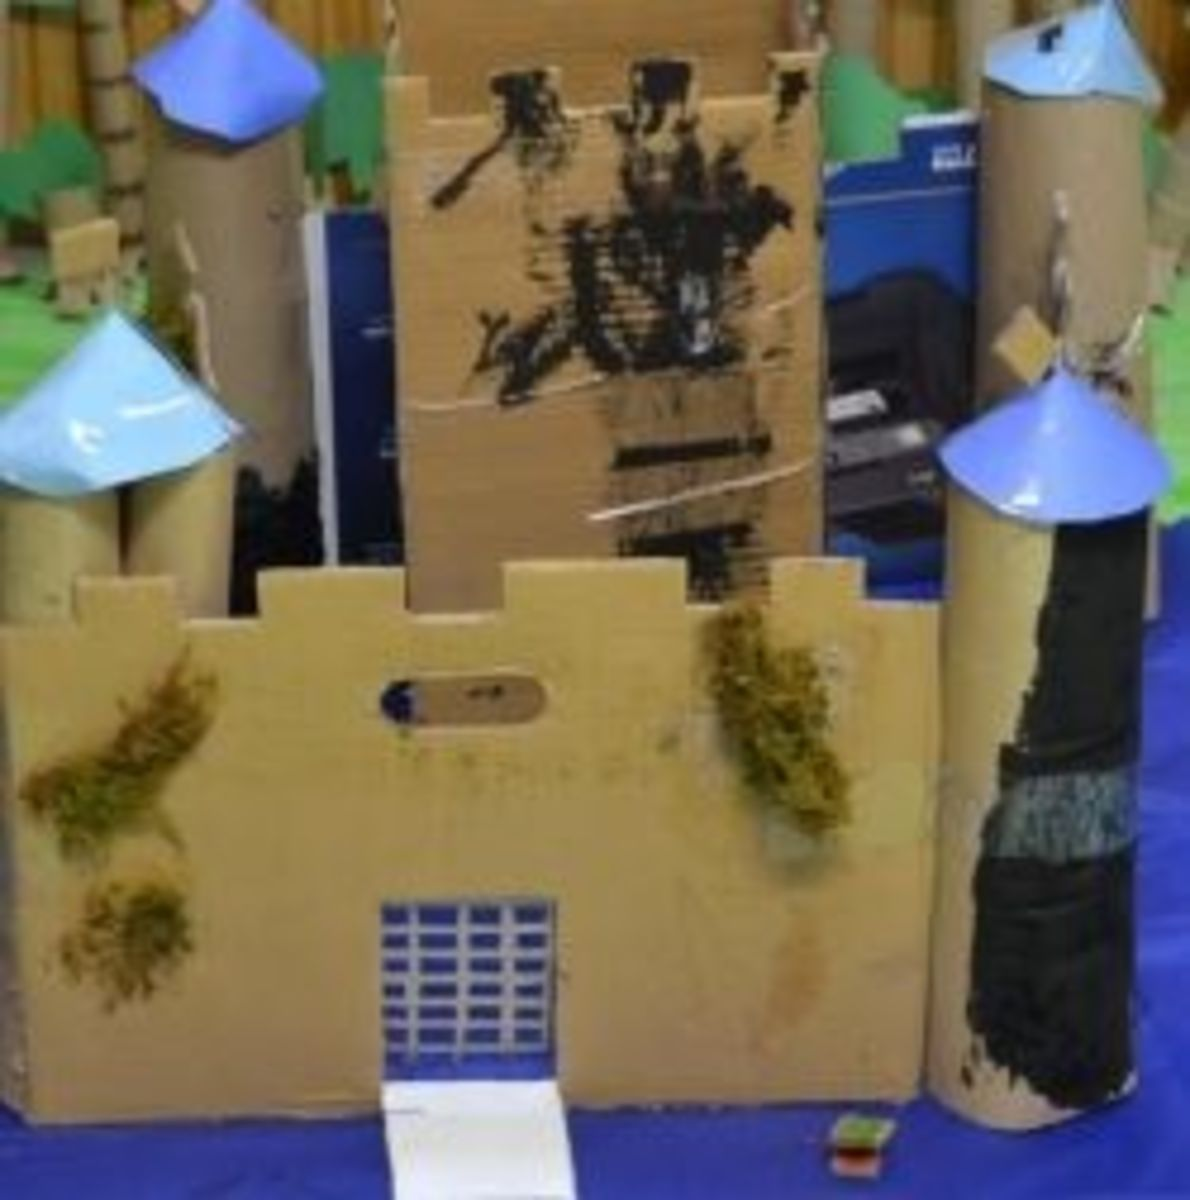 Castle model made from cardboard boxes. Photo taken by https://www.facebook.com/MichelleHarrisonPhotography who participates in our class